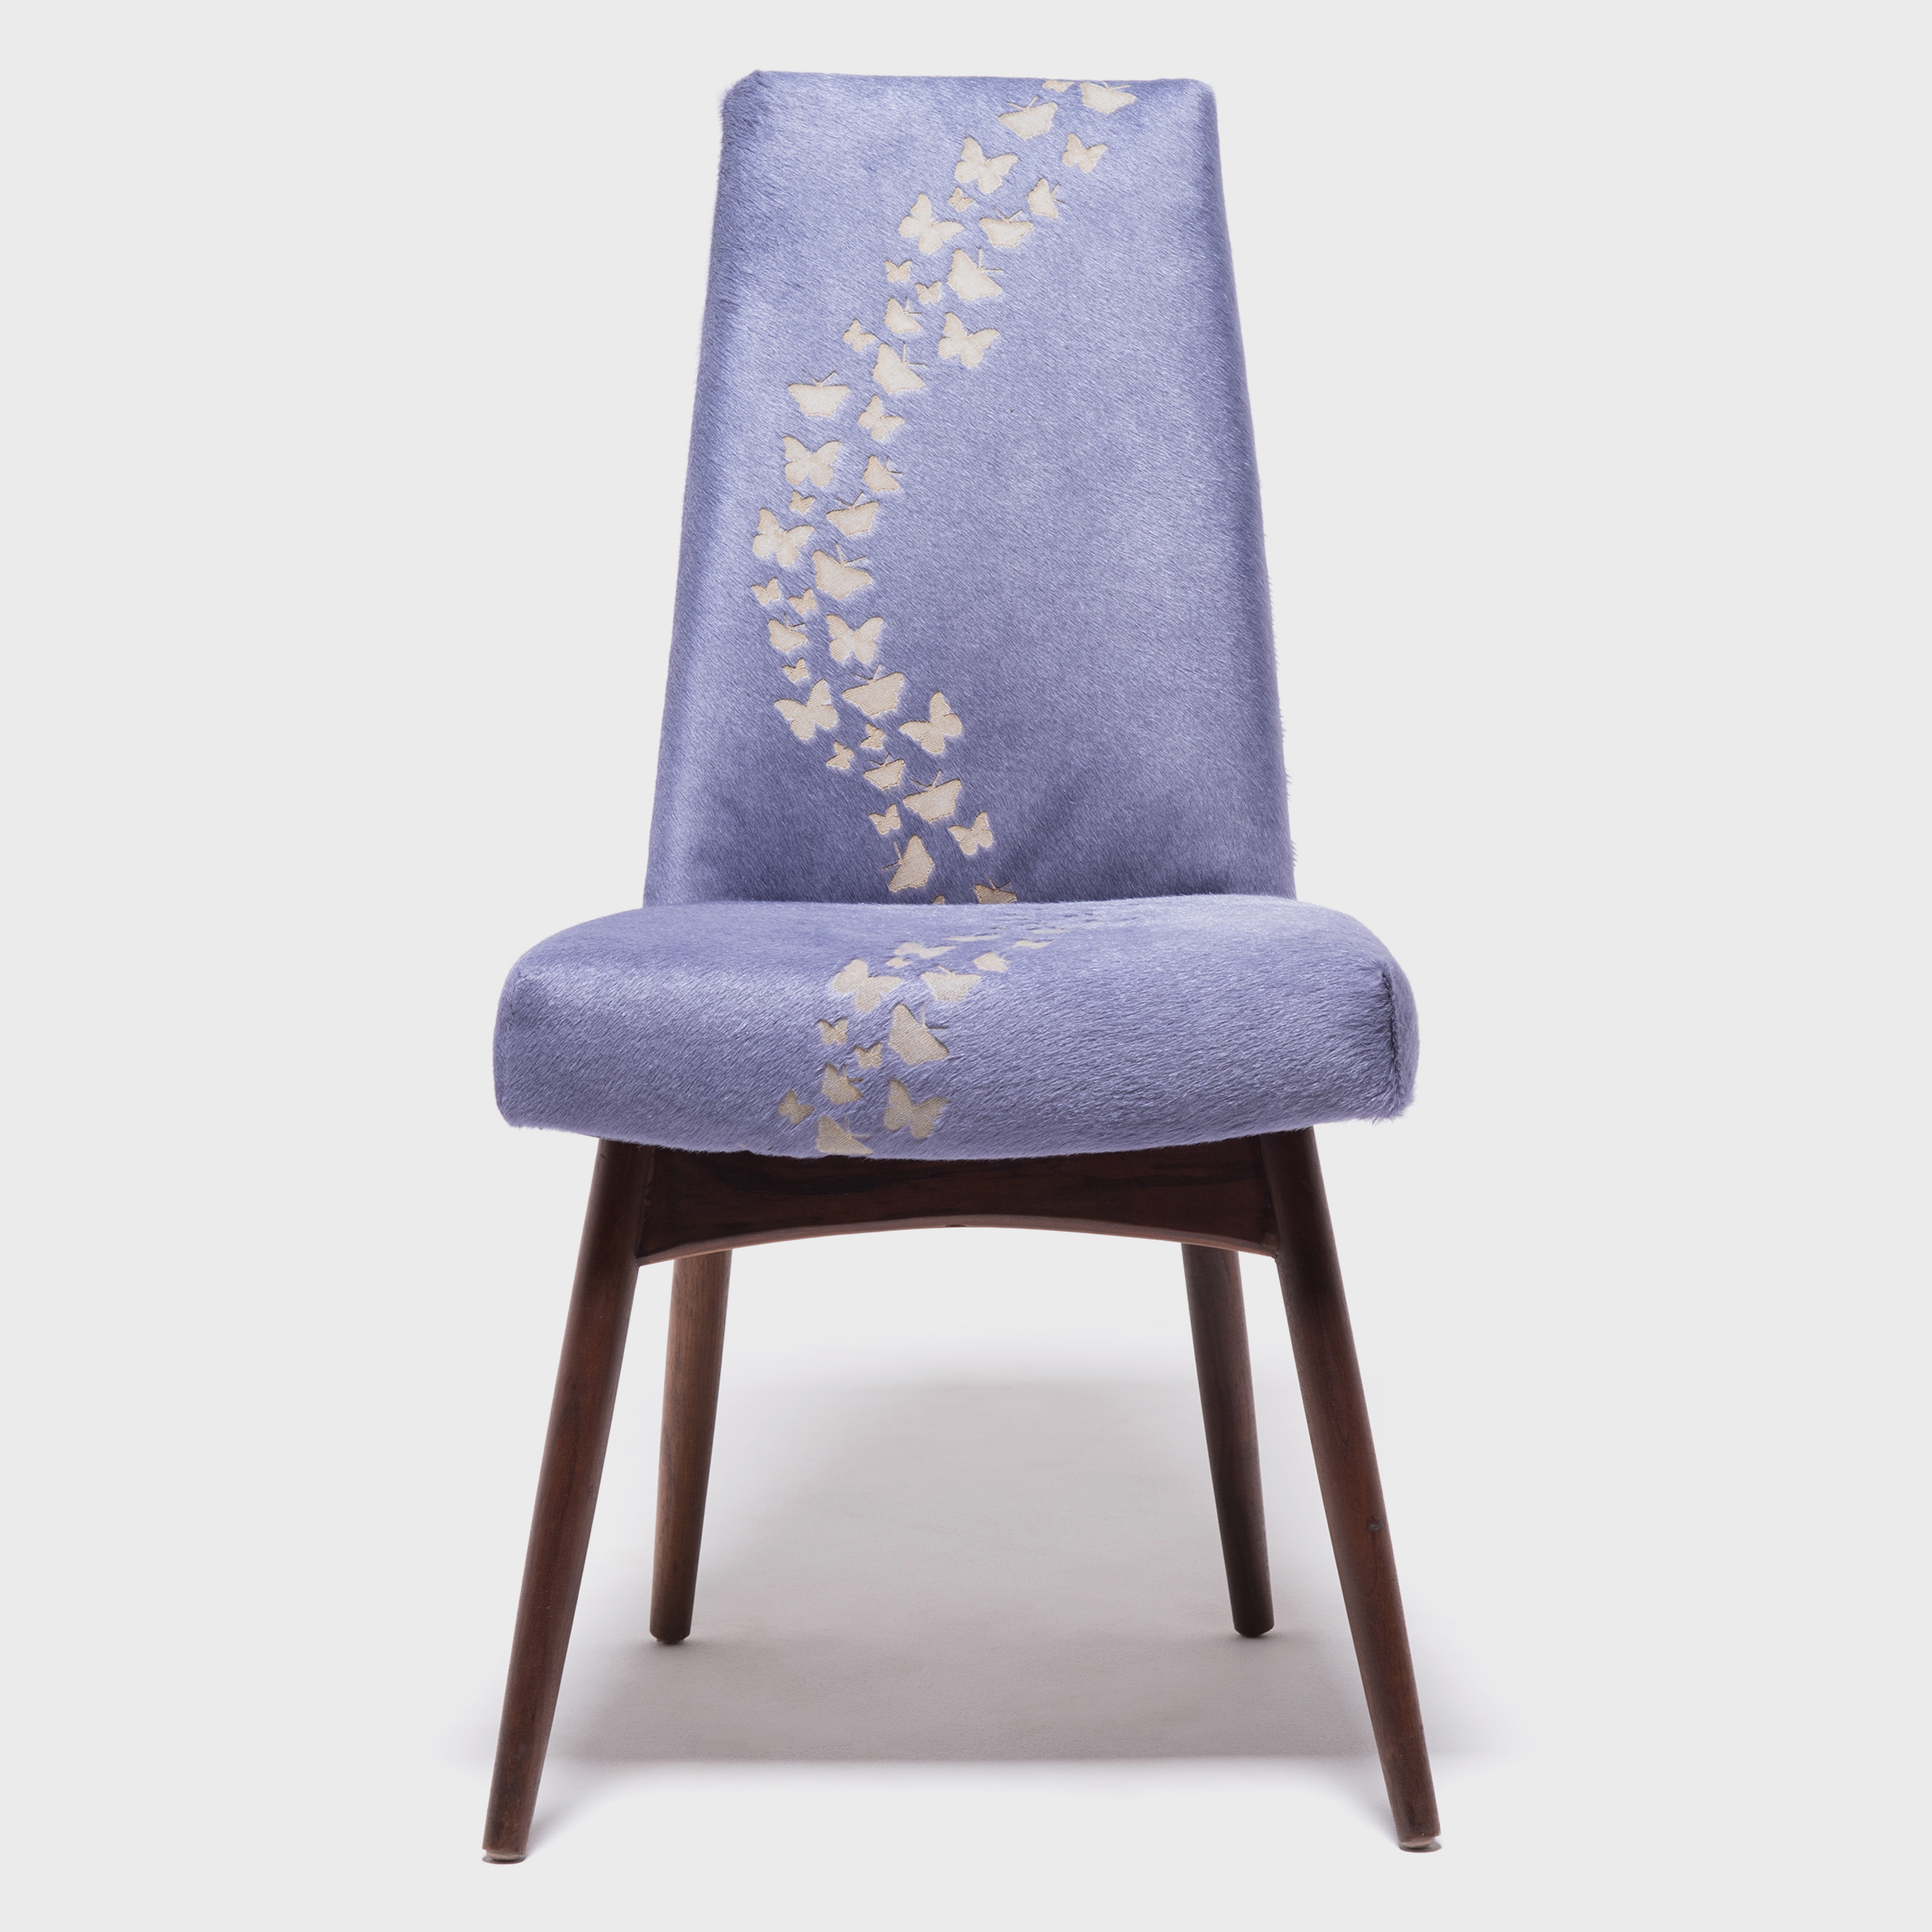 adrian pearsall chair designs pedestal high vintage with laser cut butterflies on hide browse questions ask us